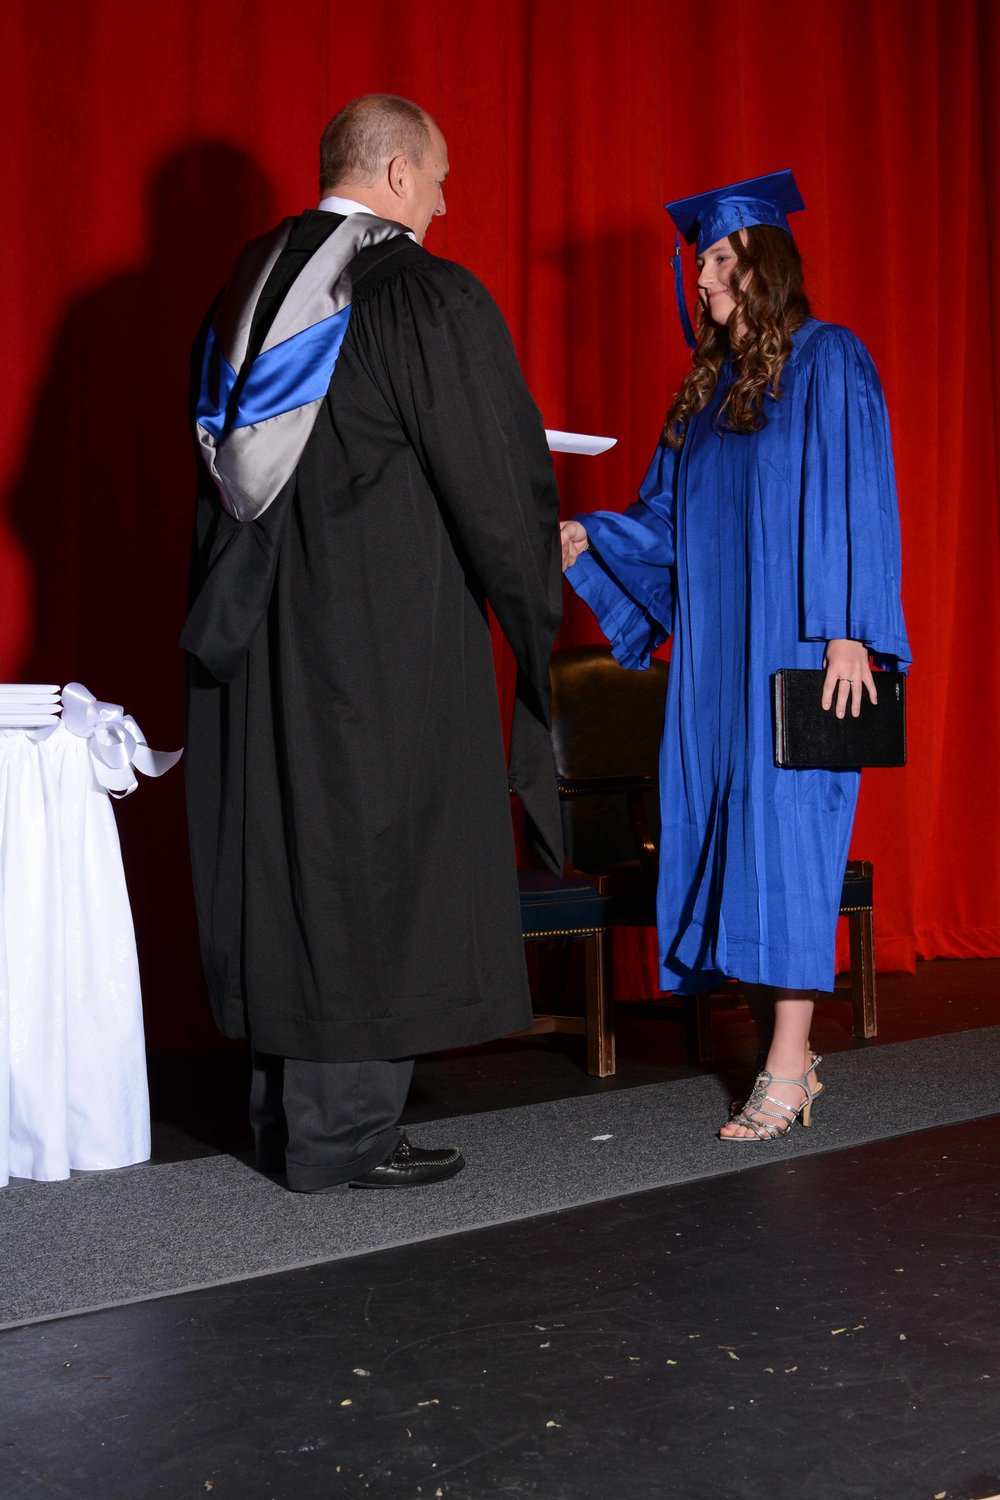 May15 HardingGraduation30.jpg